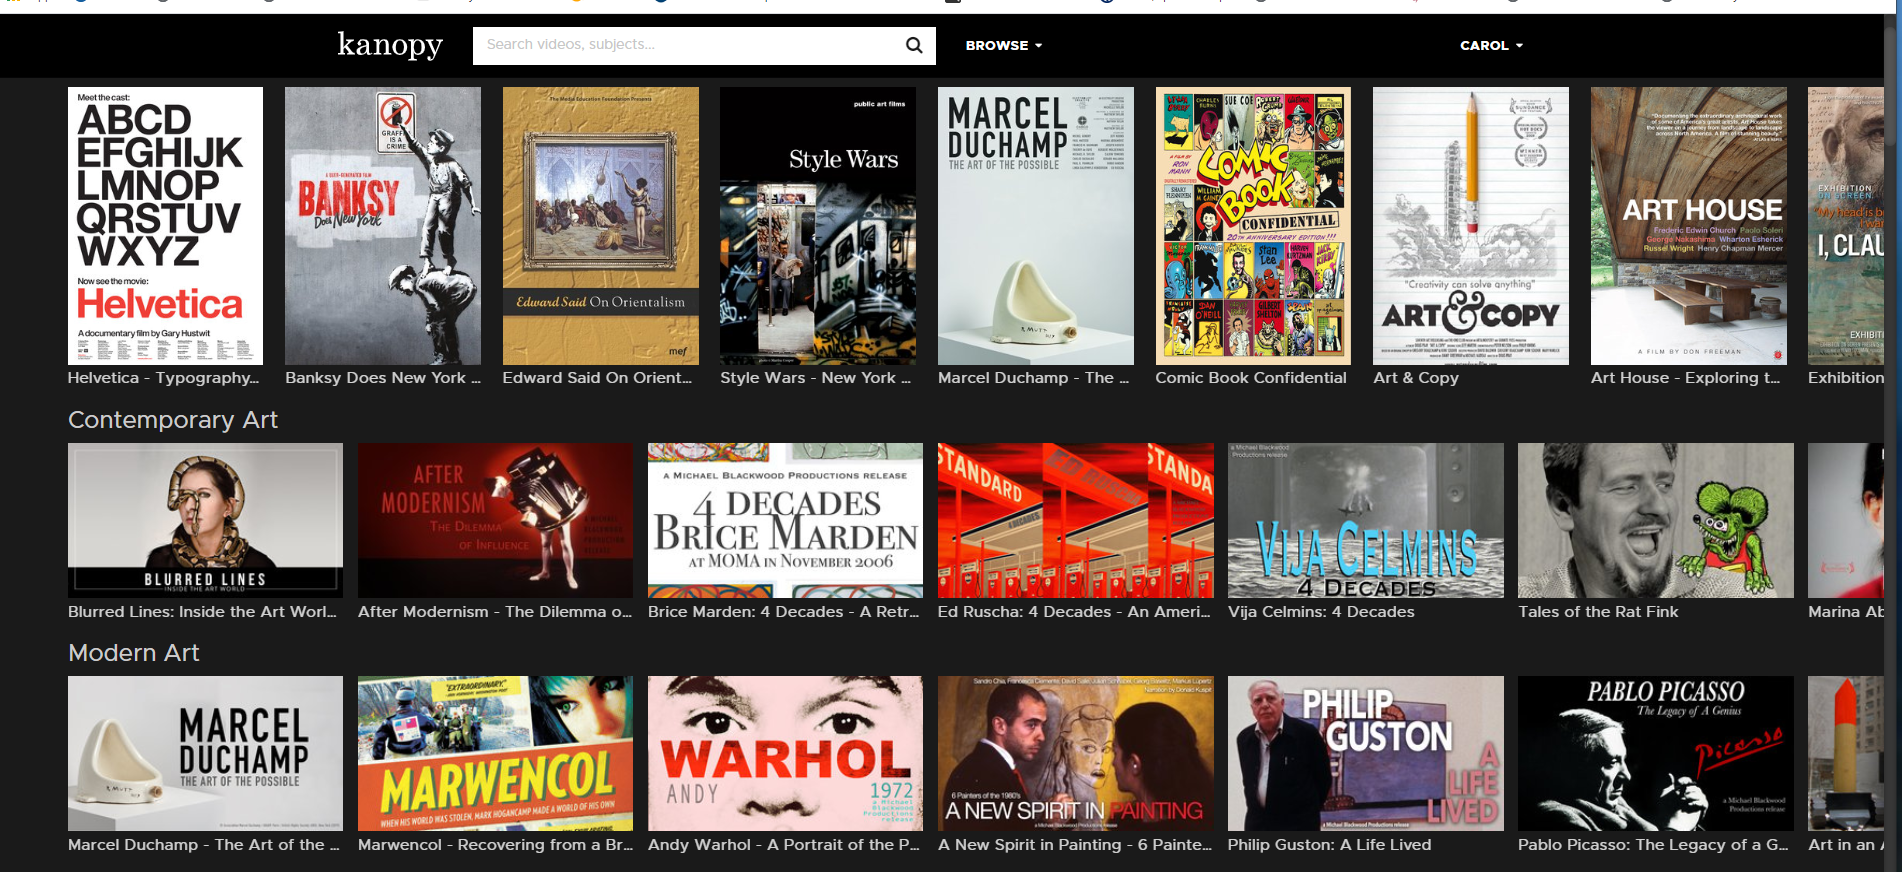 Kanopy provides access to critically-acclaimed movies, inspiring documentaries, award-winning foreign films and more.